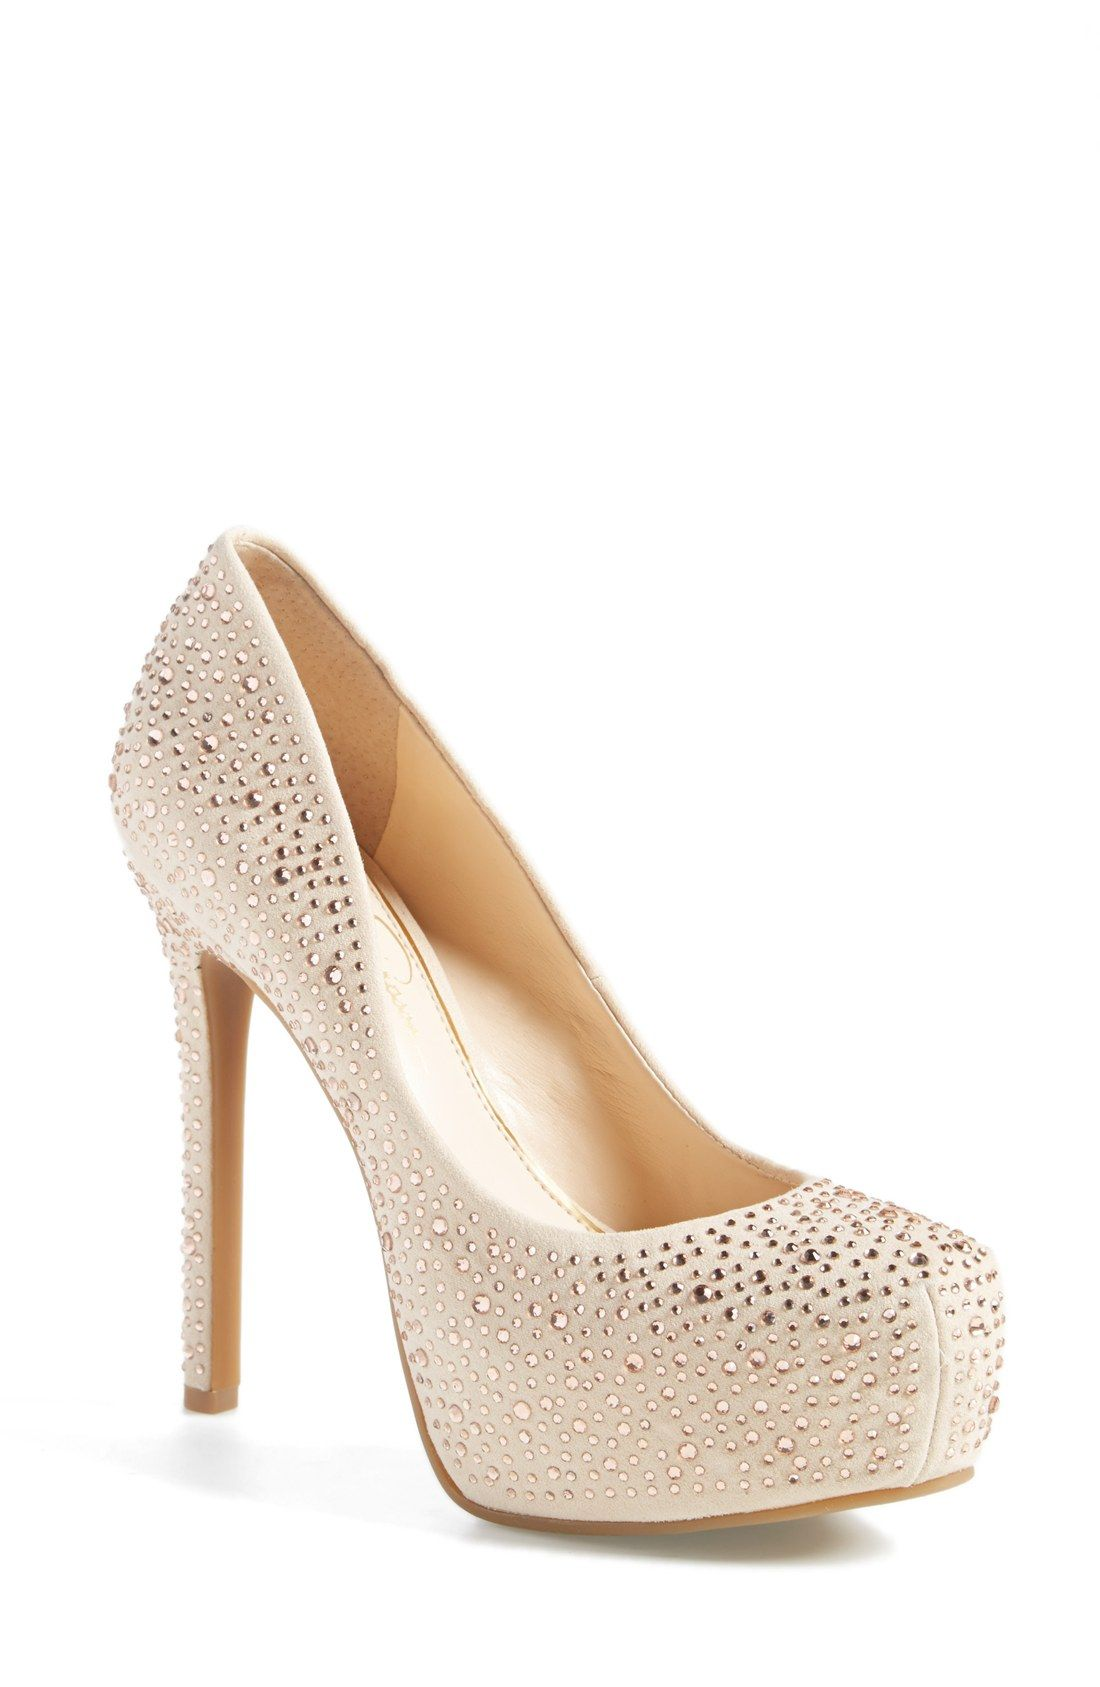 4b4b458a75b These gold studded pumps are perfect for prom. | Dresses For All ...